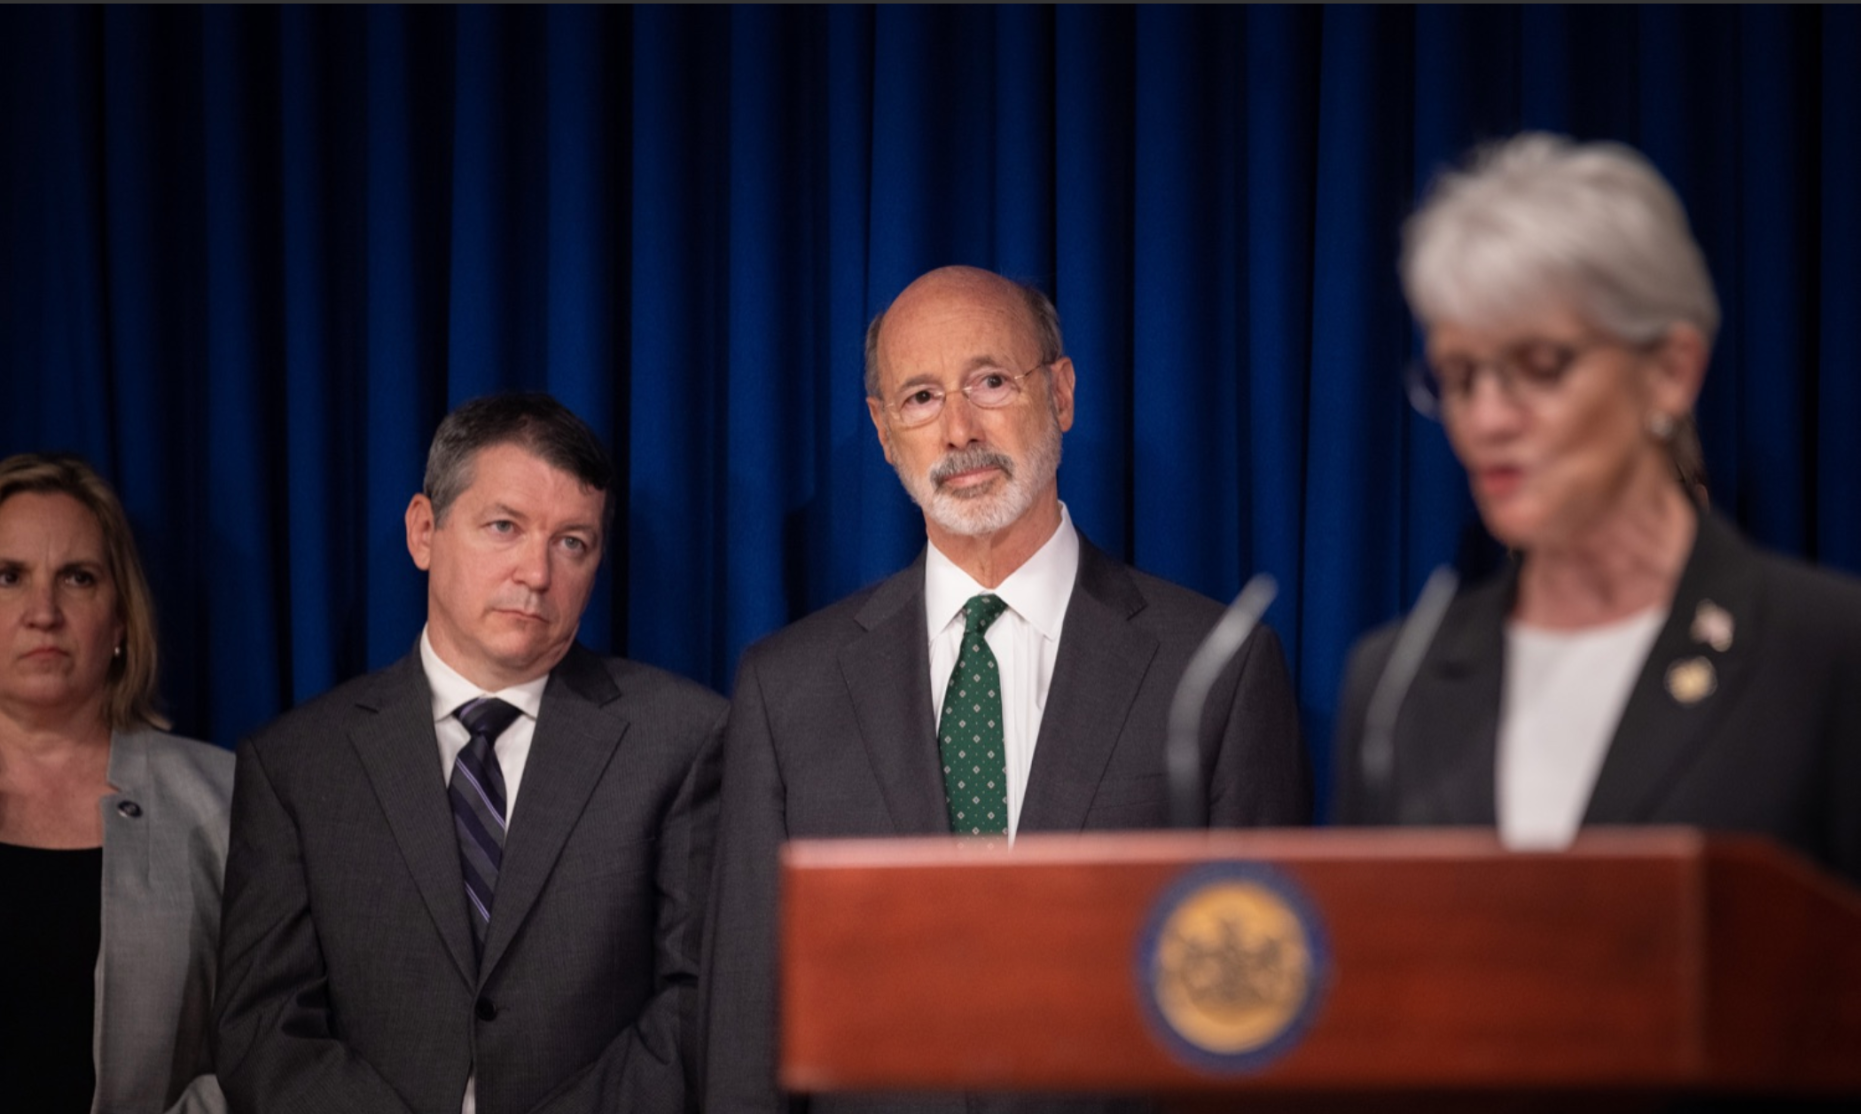 Spending plan for Pennsylvania's emissions auction proceeds unveiled